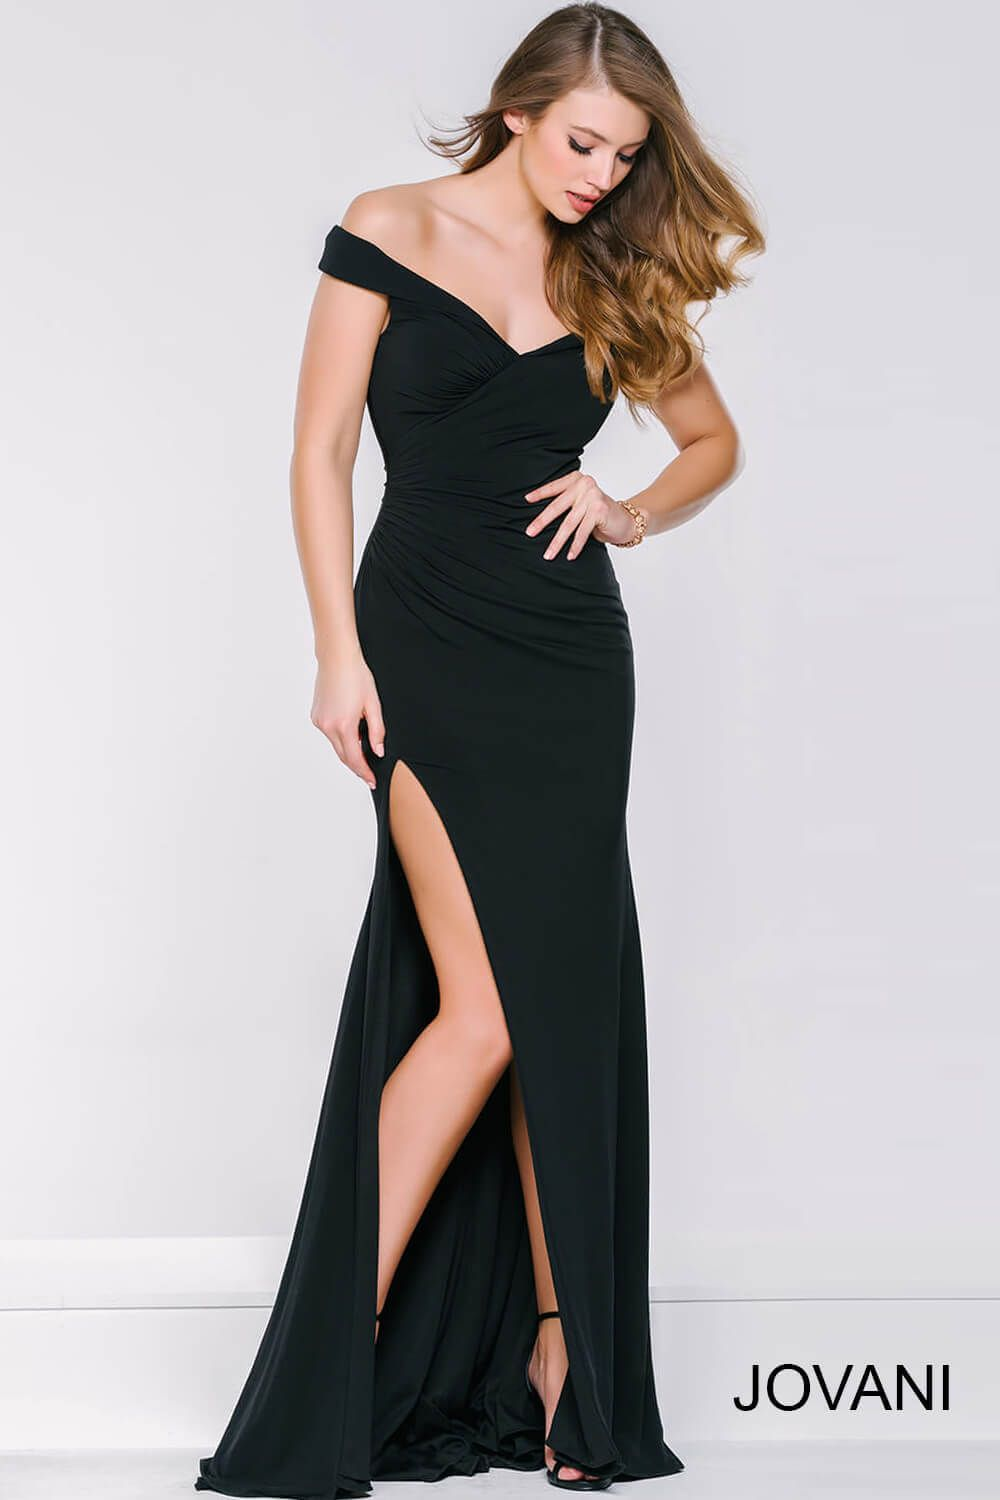 628fe73a5c0 Alluring Sexy Black Jersey Off the Shoulder Evening Gowns with Side Slit  40582 Jovani